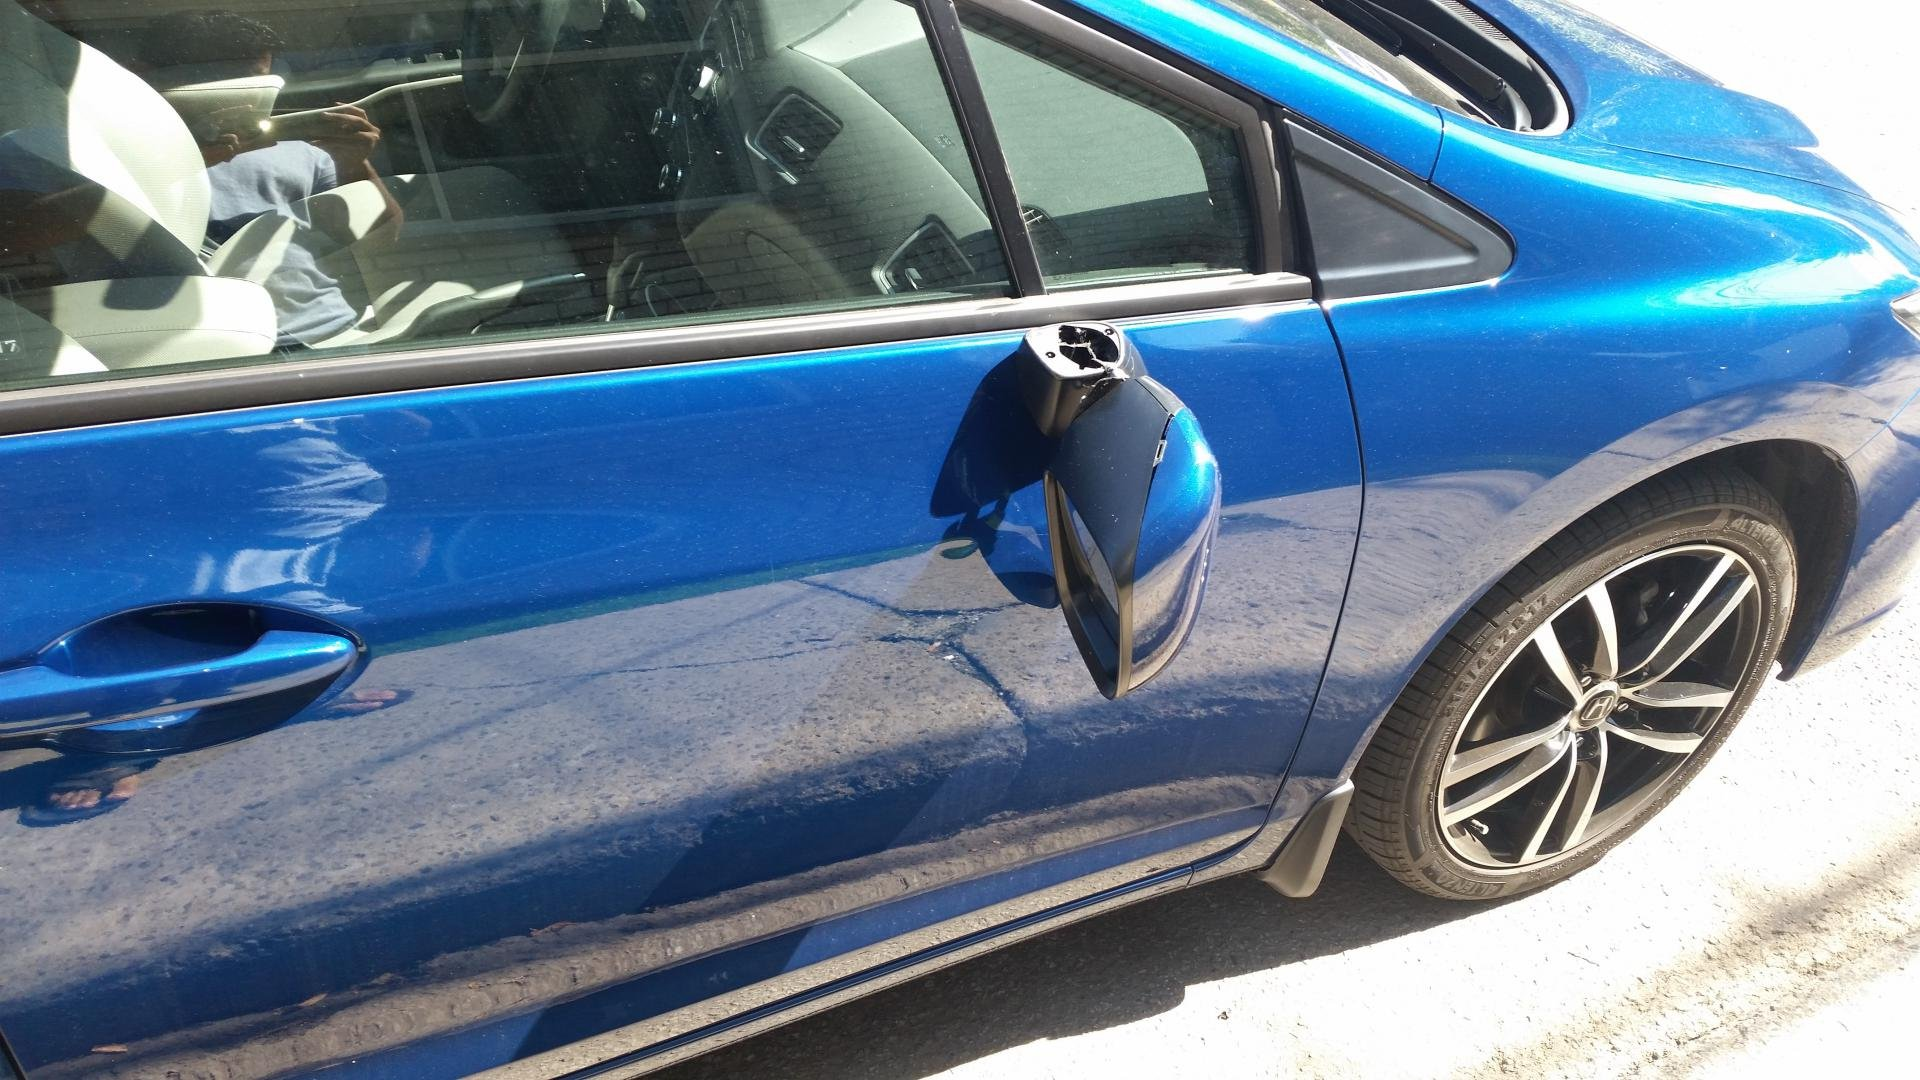 Base Of Side Mirror Assembly   How To ? 2014 Civic Sedan  CDN 20150911_131441  ...